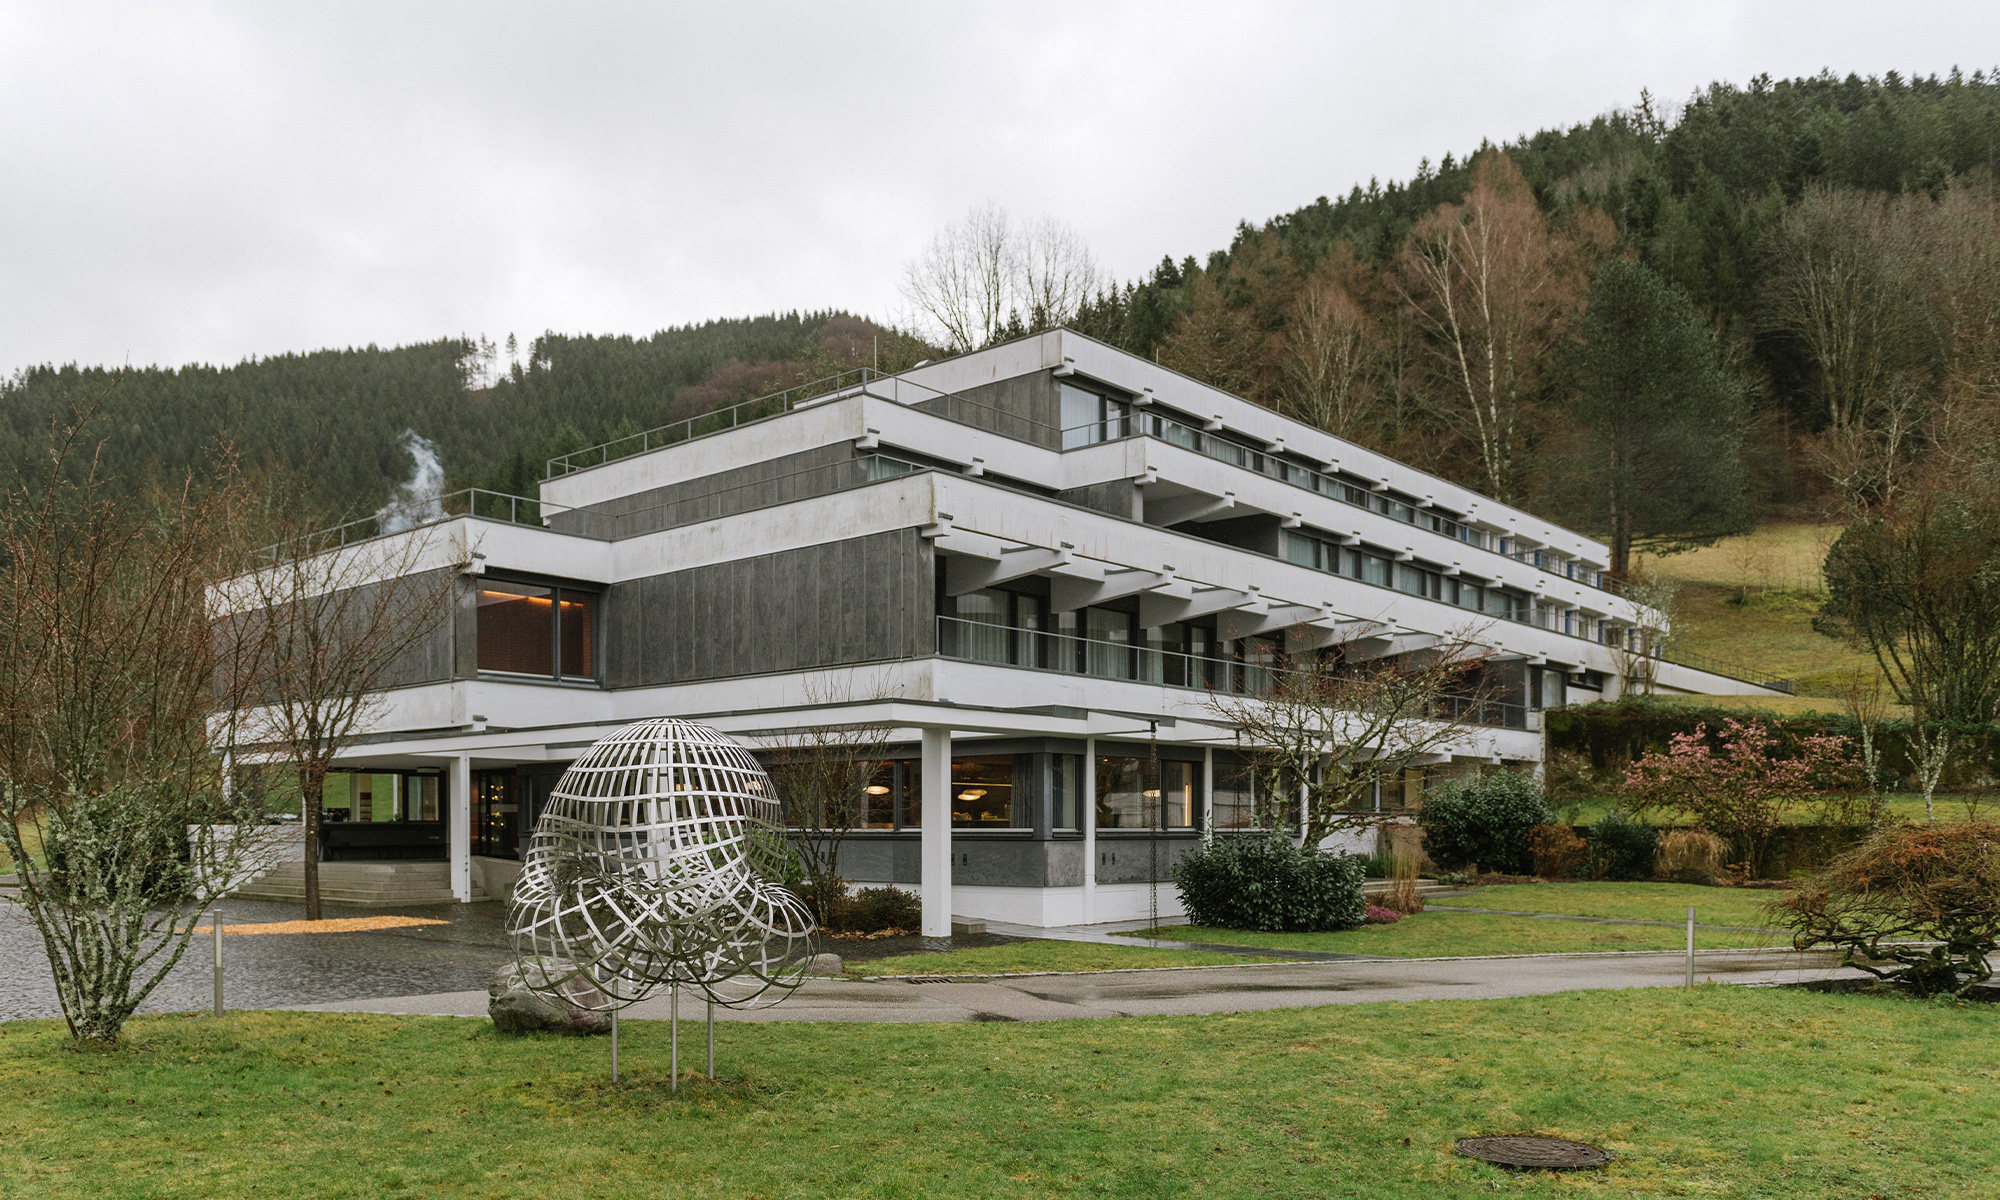 Exterior photo of the grounds of the Oberwolfach Research Institute for Mathematics in Germany